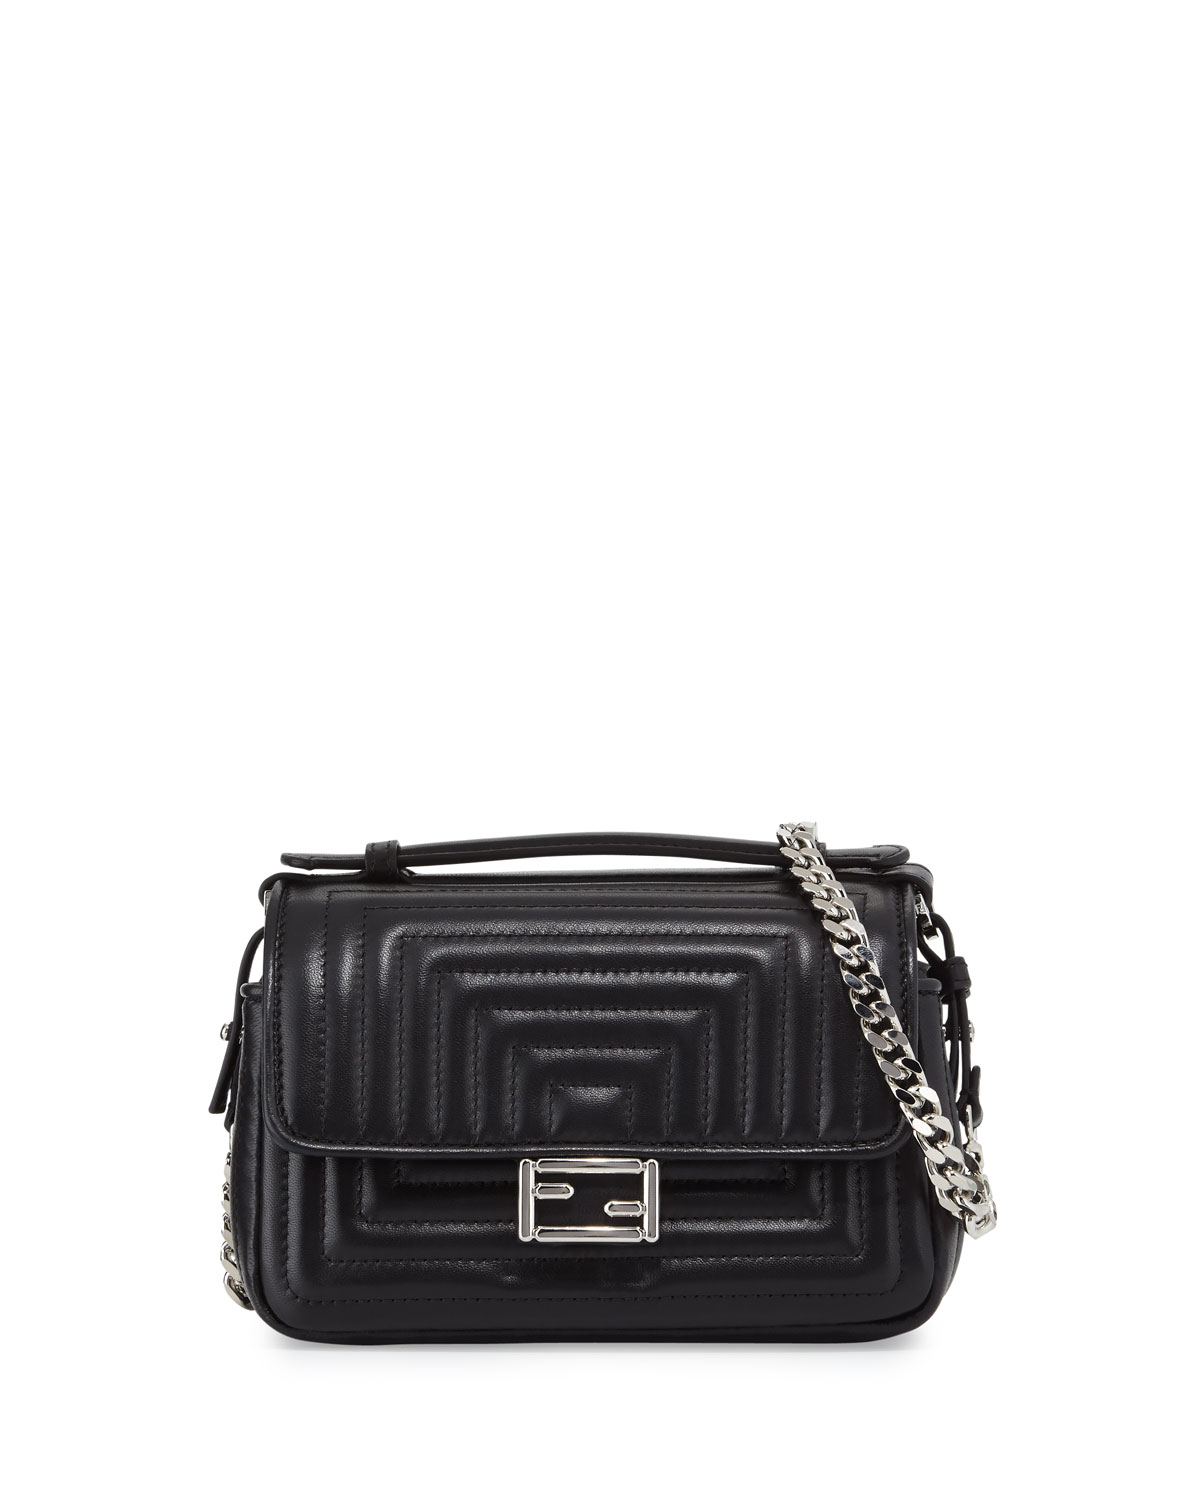 Fendi Baguette Micro Double-Sided Quilted Leather Bag c200bc2a3beed